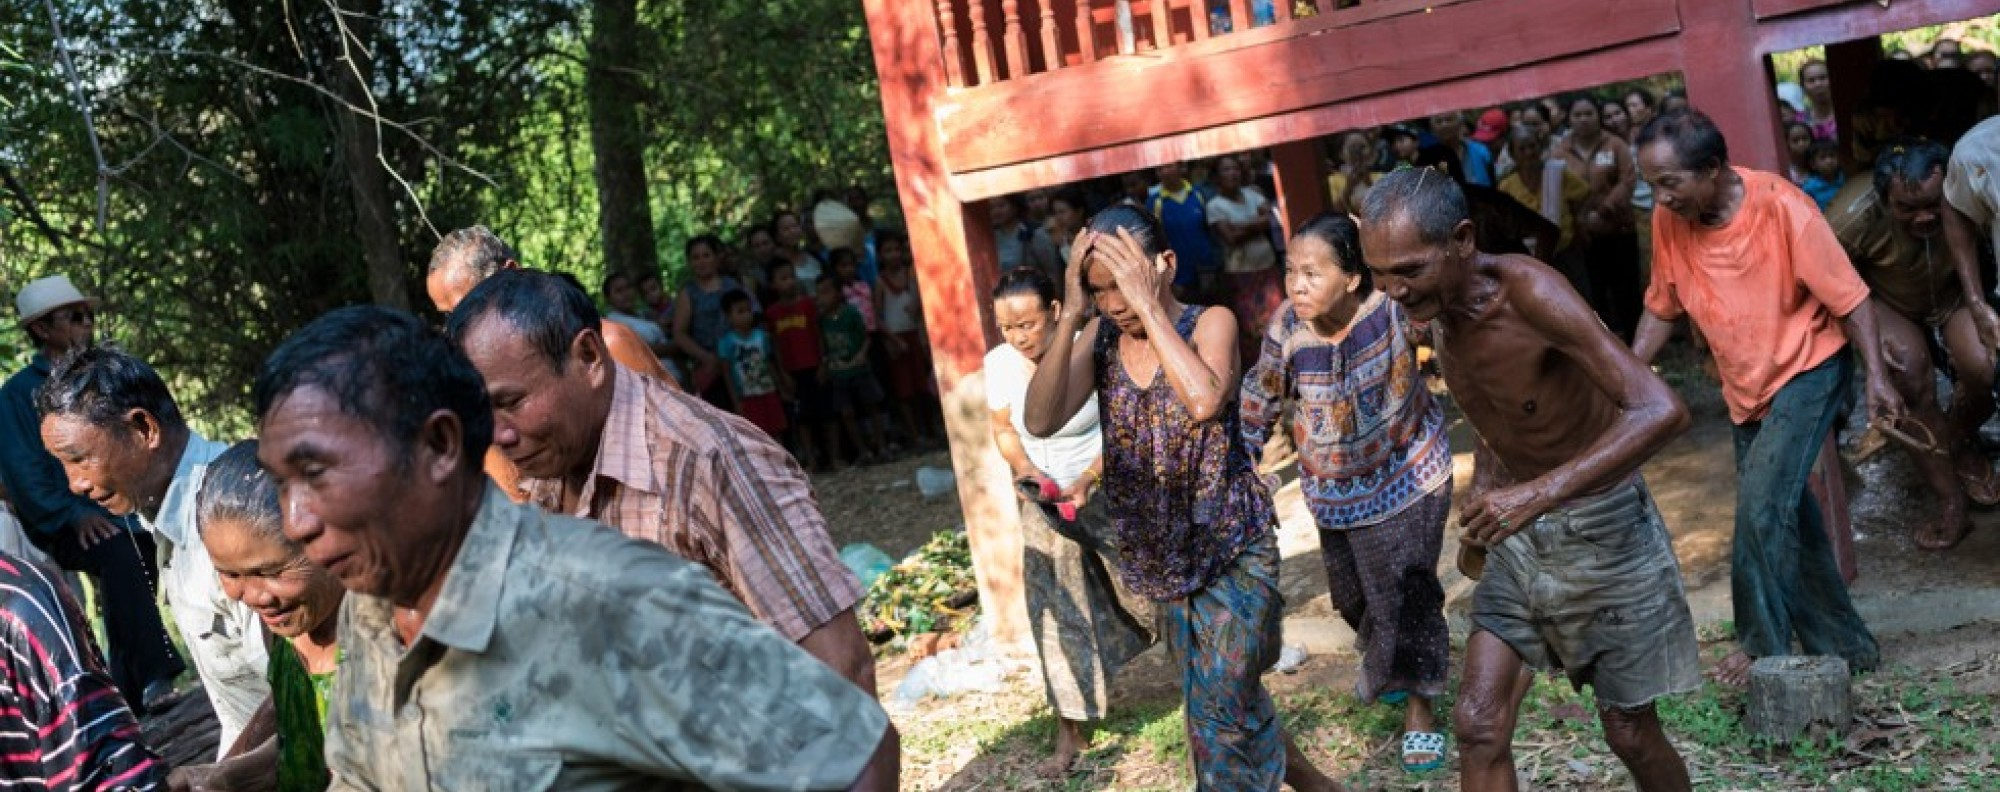 Villagers take part in a ritual to draw out the evil spirit known as Phi Pob, in Nakasang, Laos. Picture: Thomas Cristofoletti